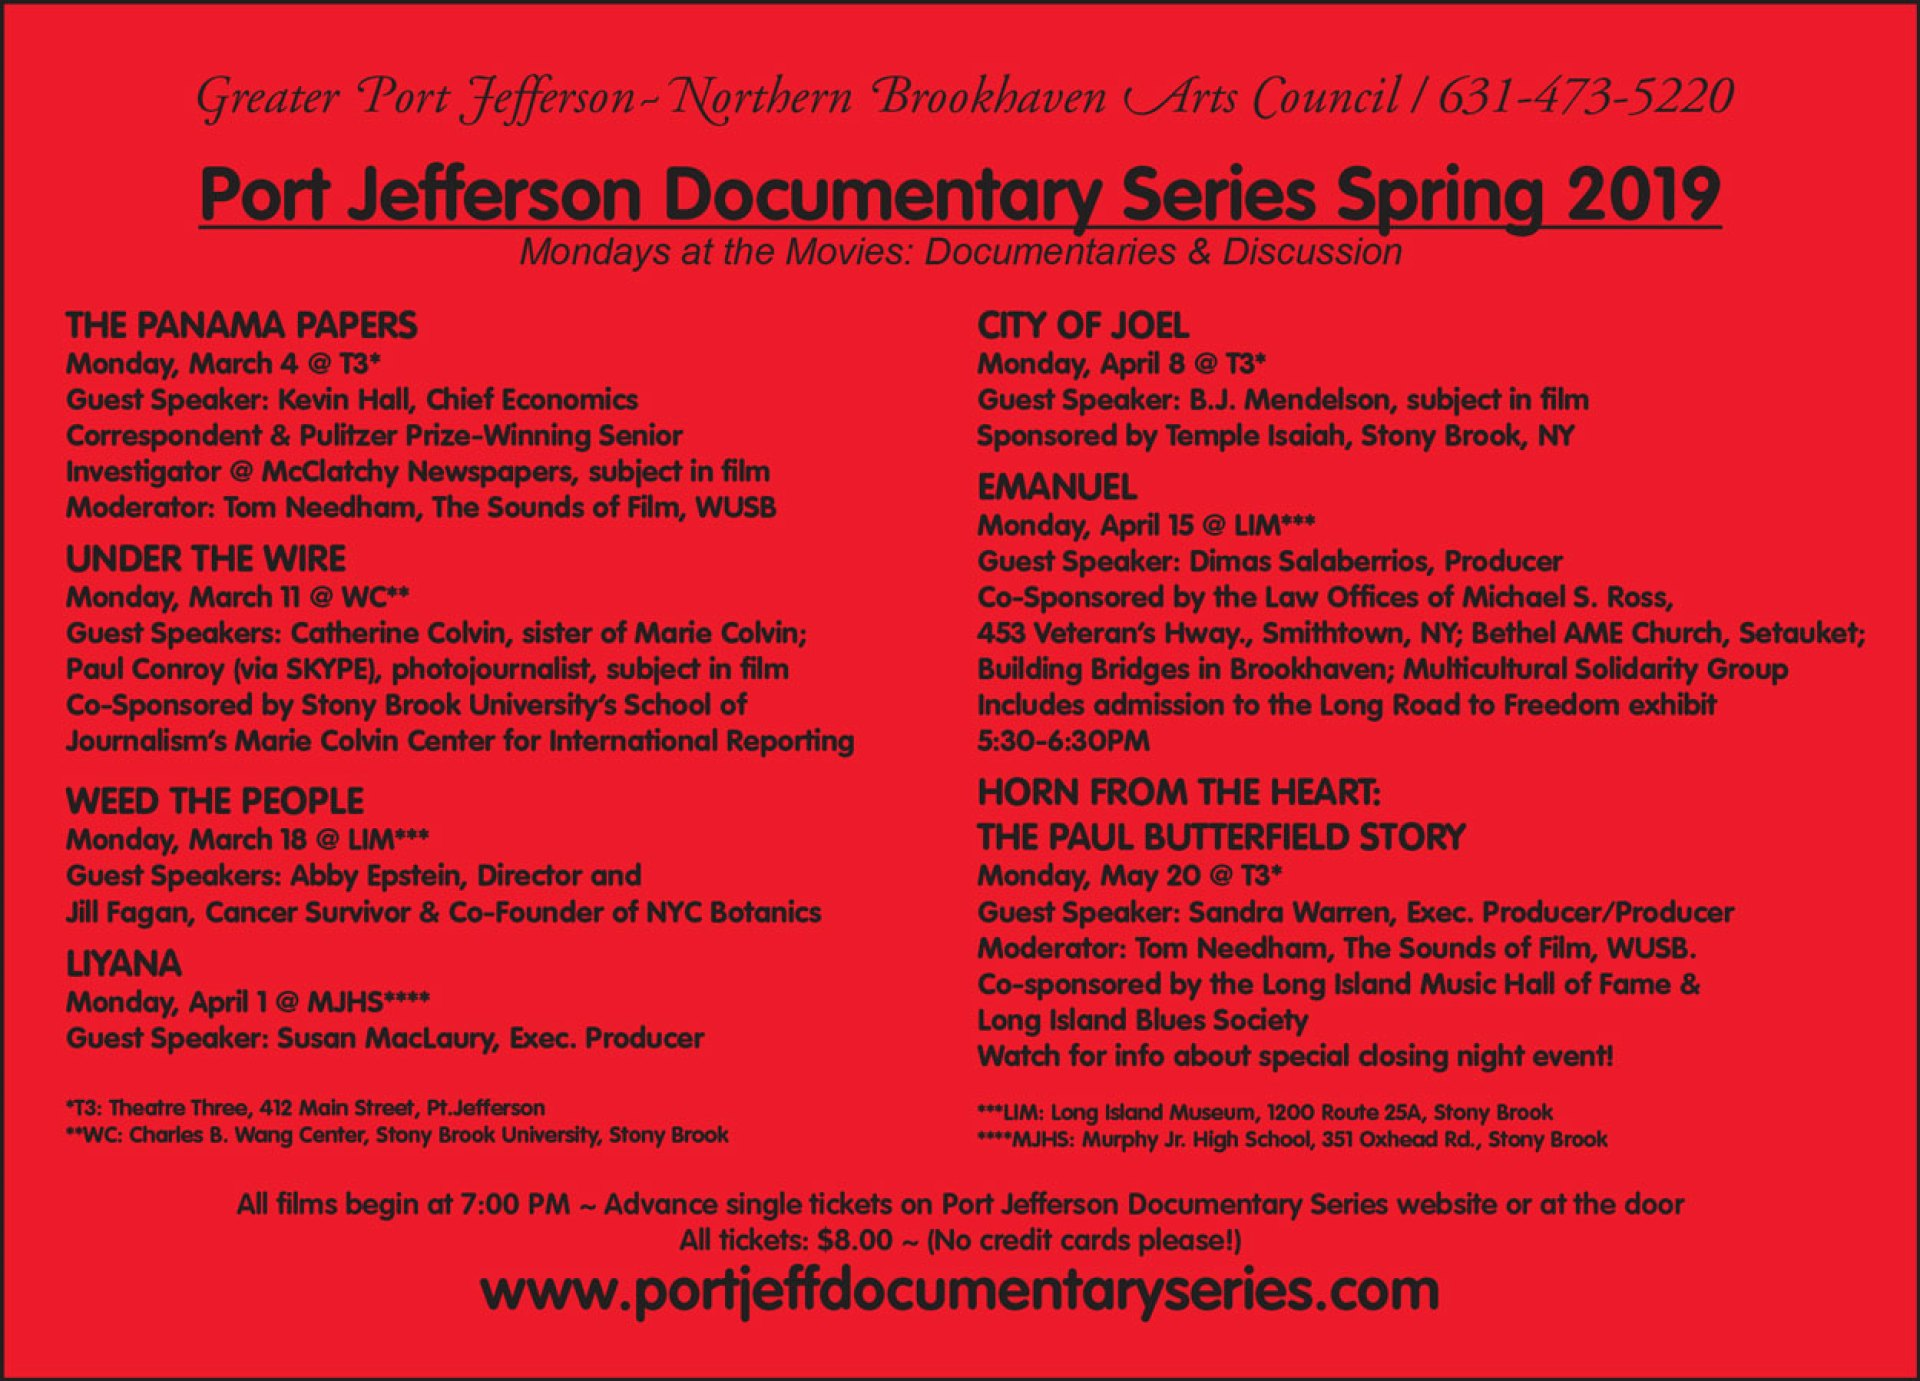 pjds spring 2019 red card front summary of films